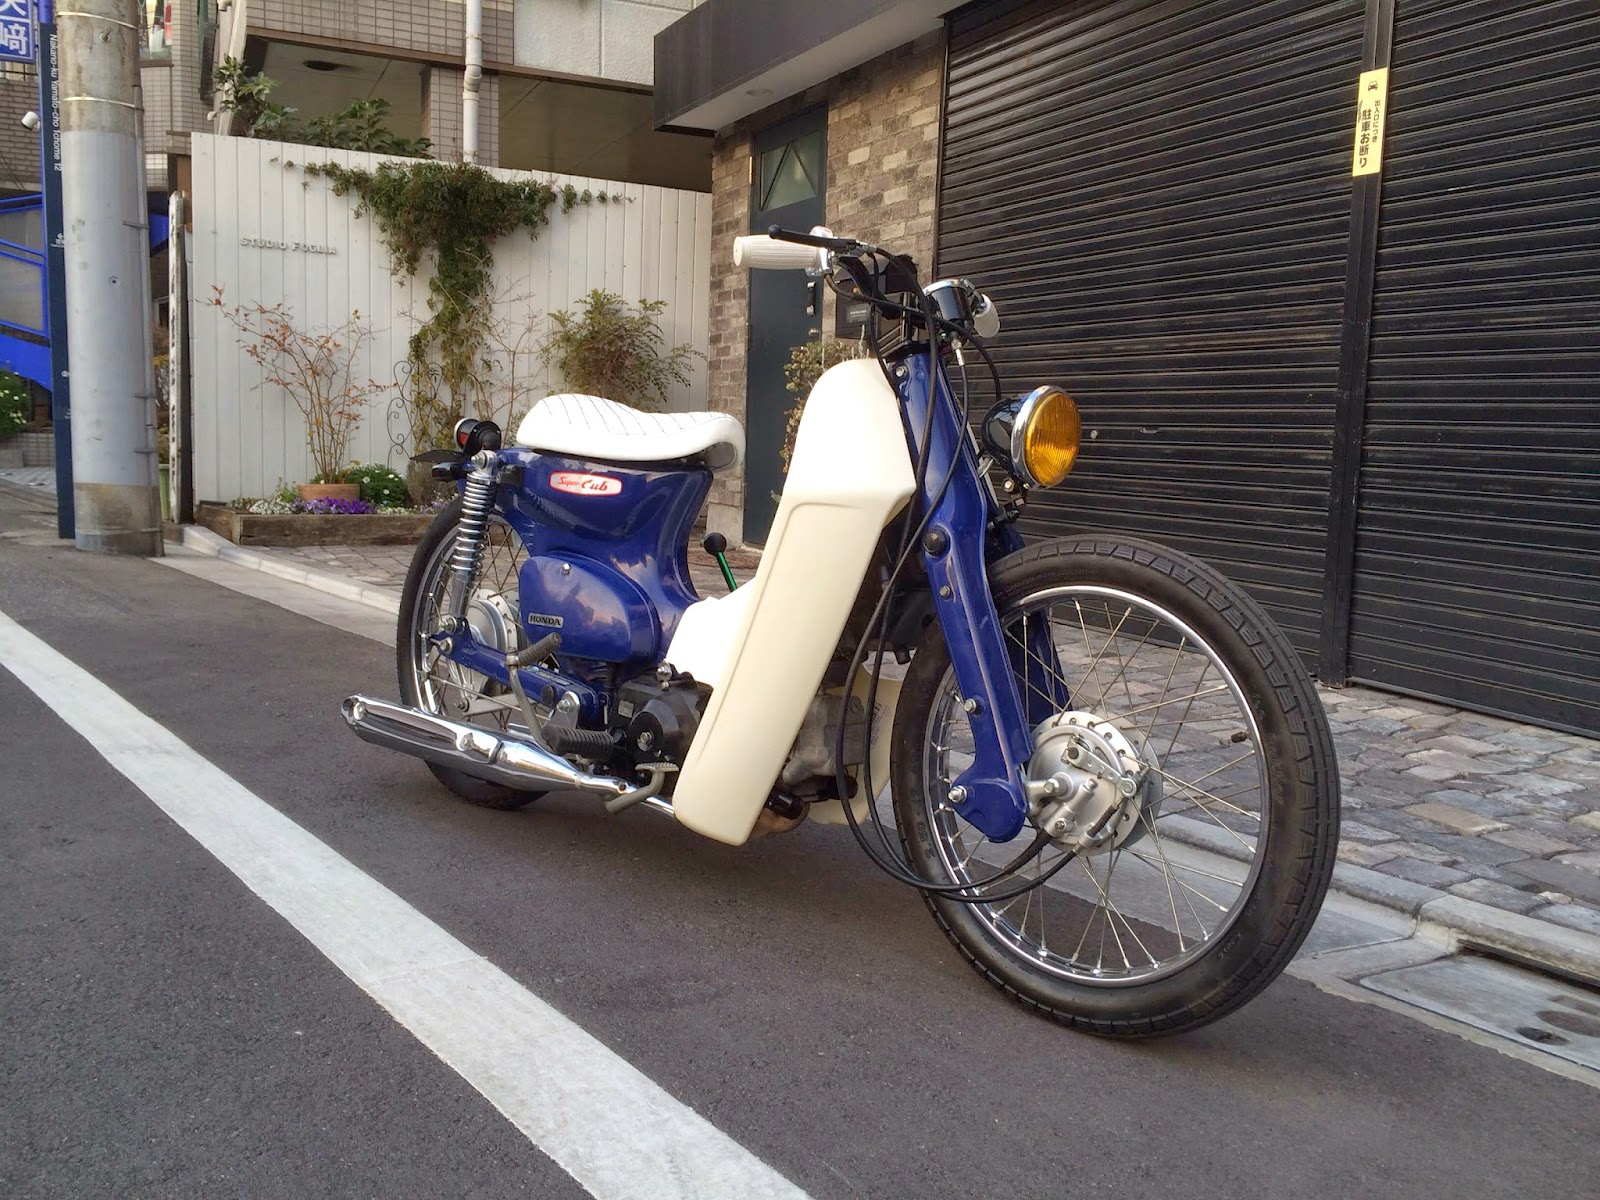 CUSTOM SUPER CUB FROM JAPAN 03 - CRAZE GENUINE CUSTOM